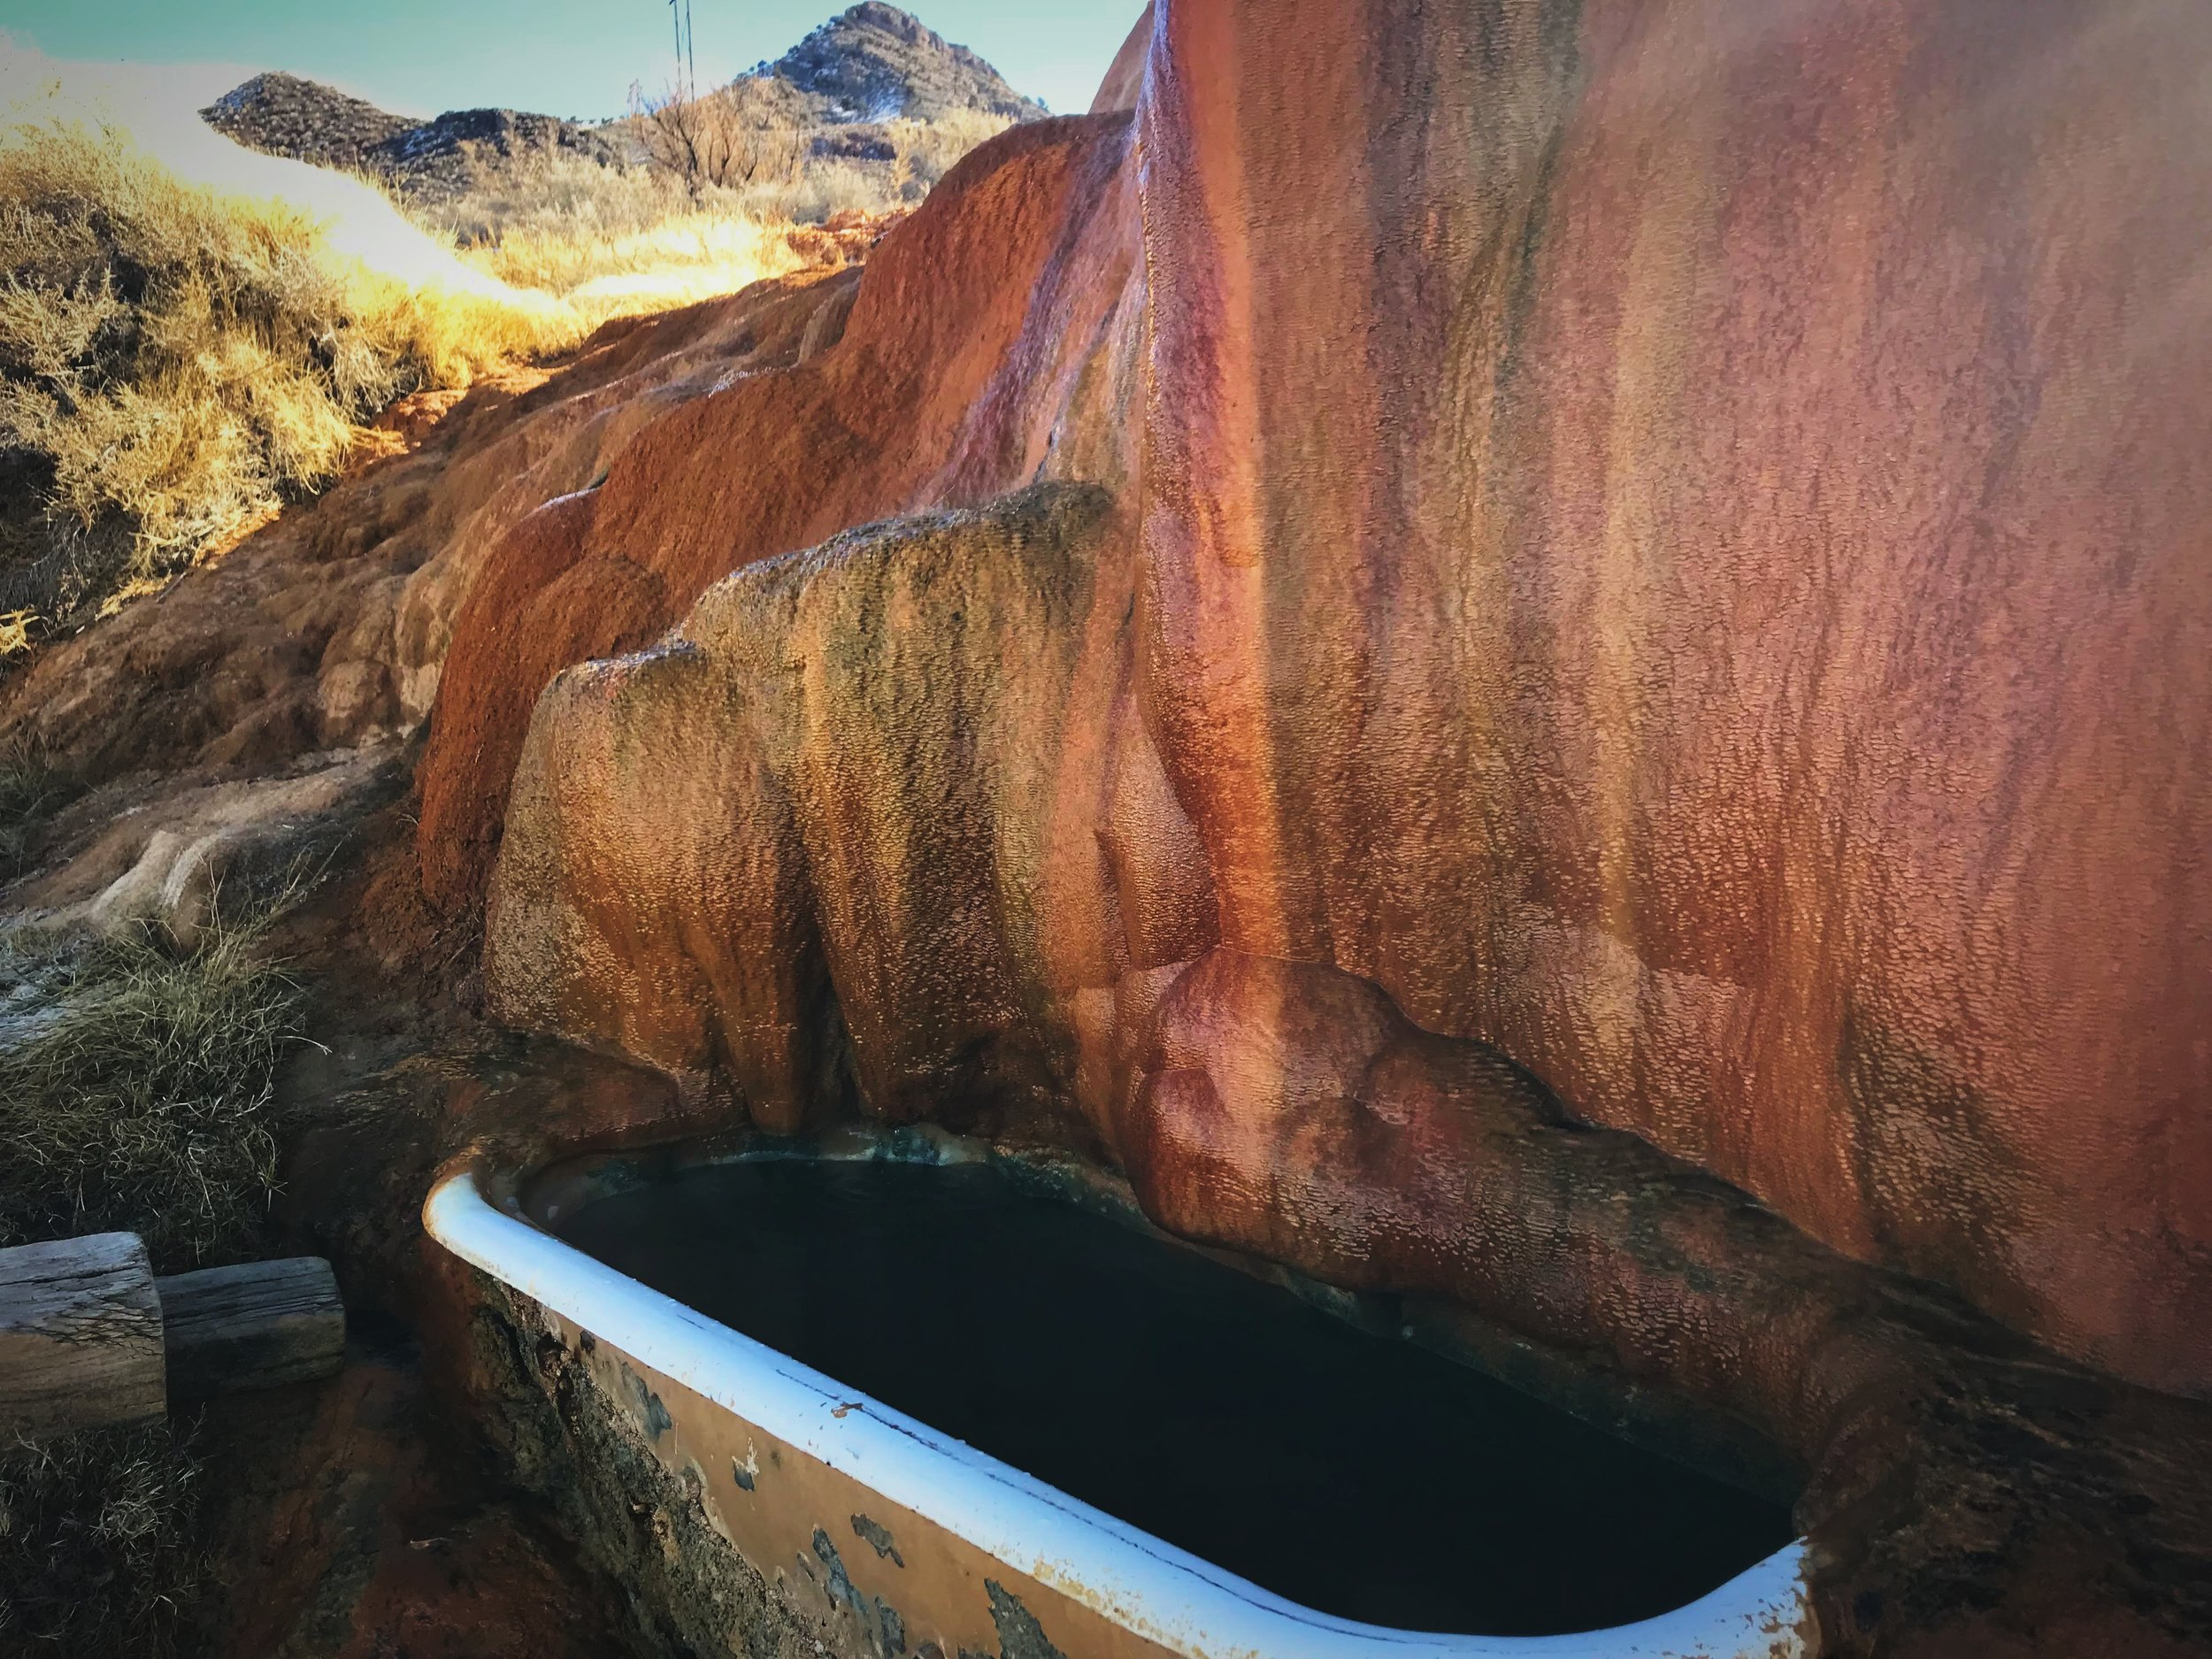 The water runs over the mineral and into the pools.